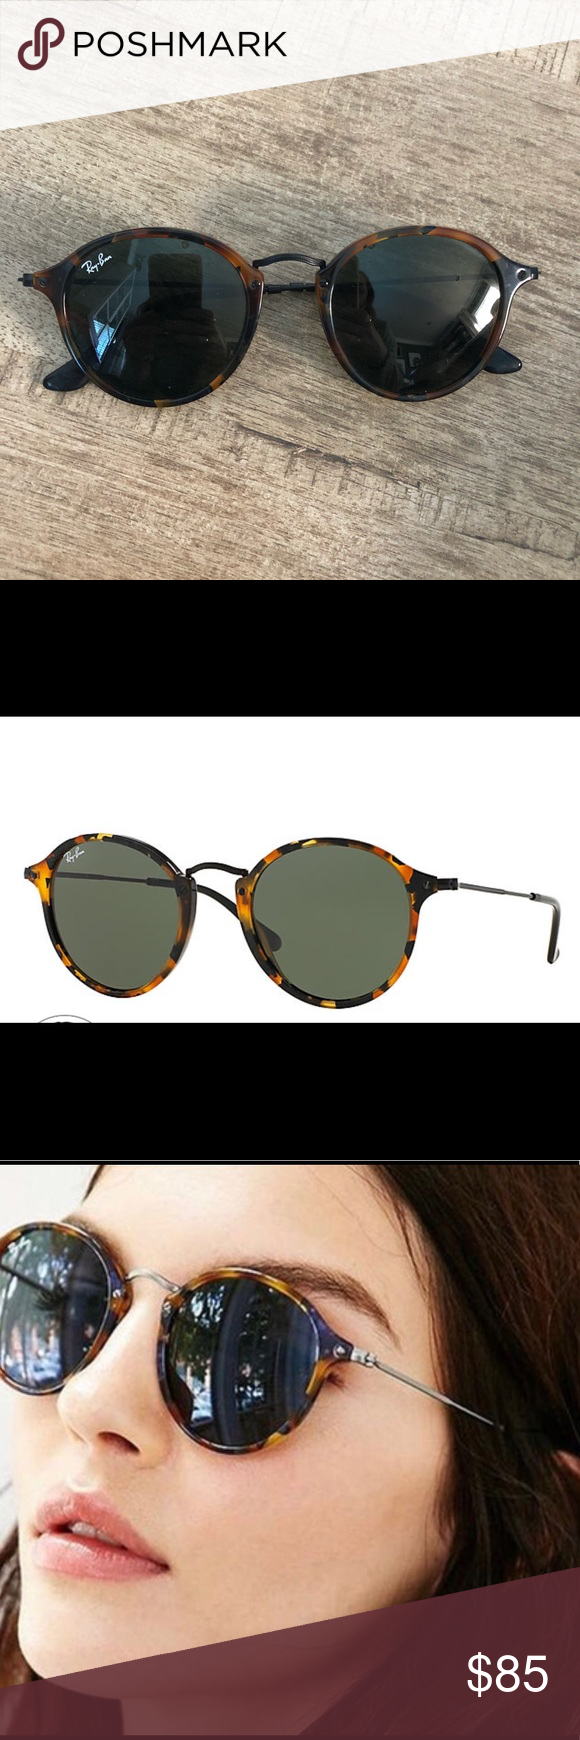 85b7ccf919a Rayban round fleck unisex sunglasses RB2447 Rayban round fleck have only  worn a few times.